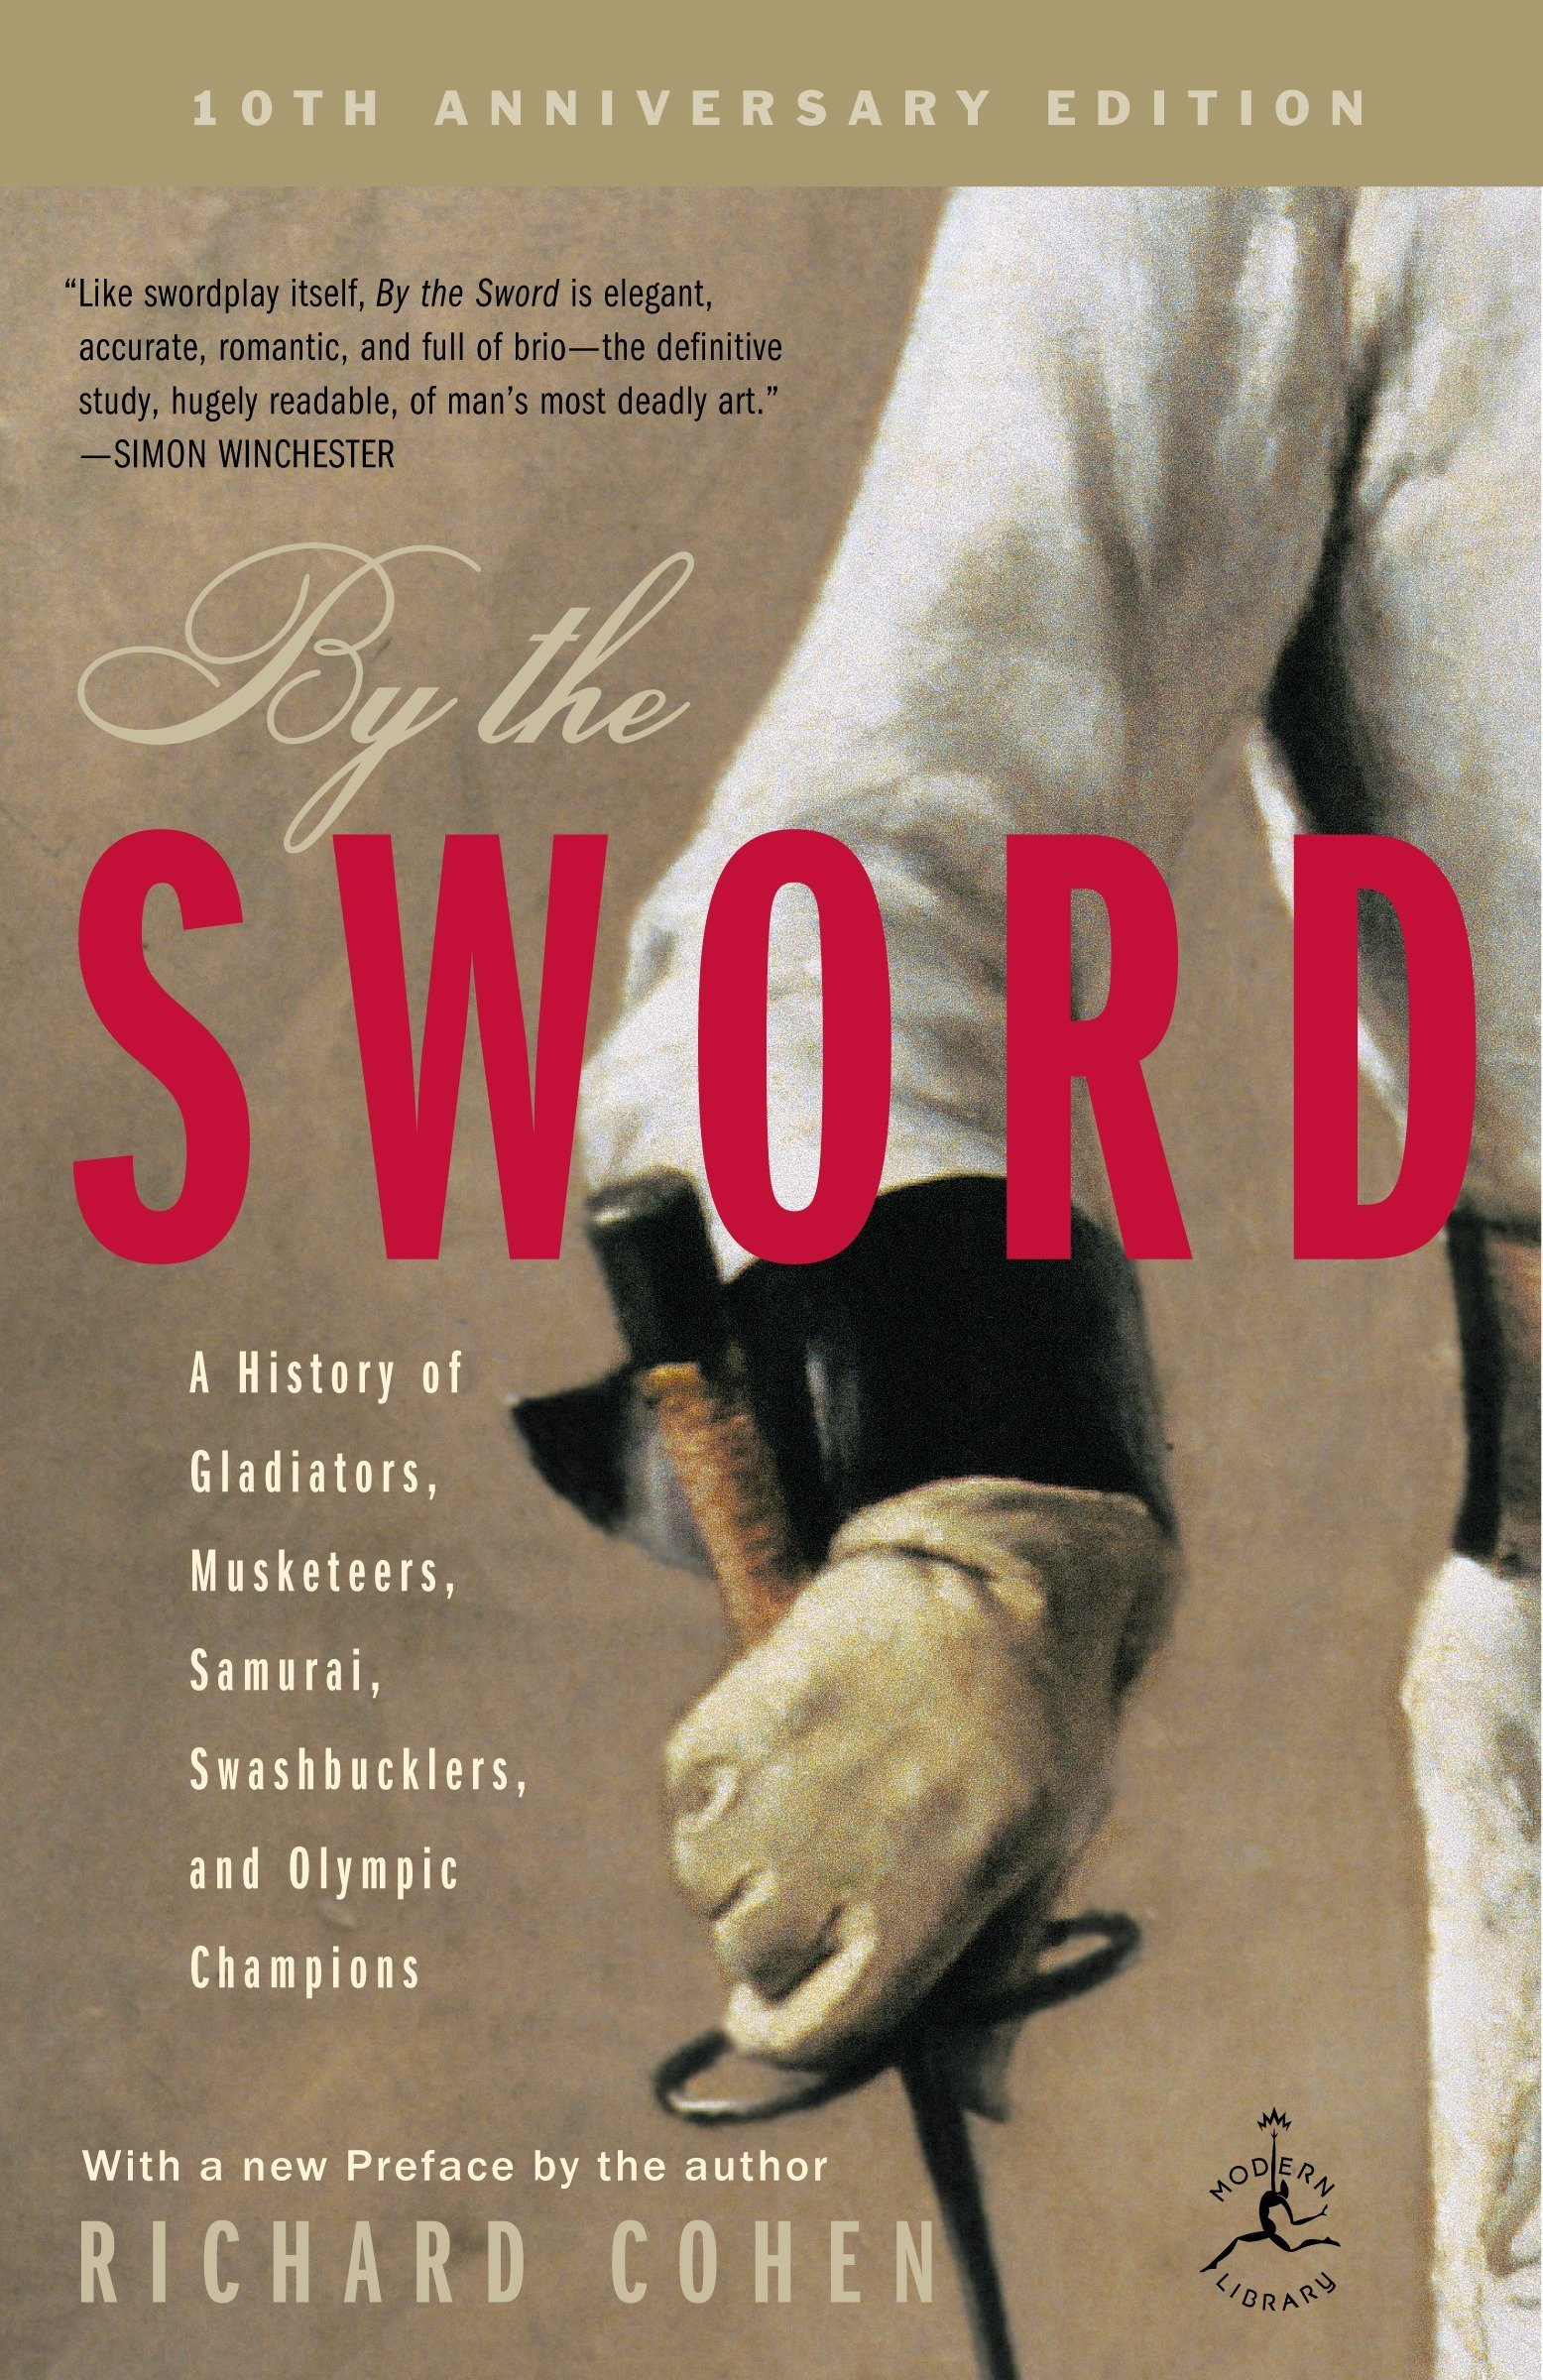 Swashbucklers and Olympic Champions; 10th anniversary edition By the Sword: A History of Gladiators Samurai Musketeers